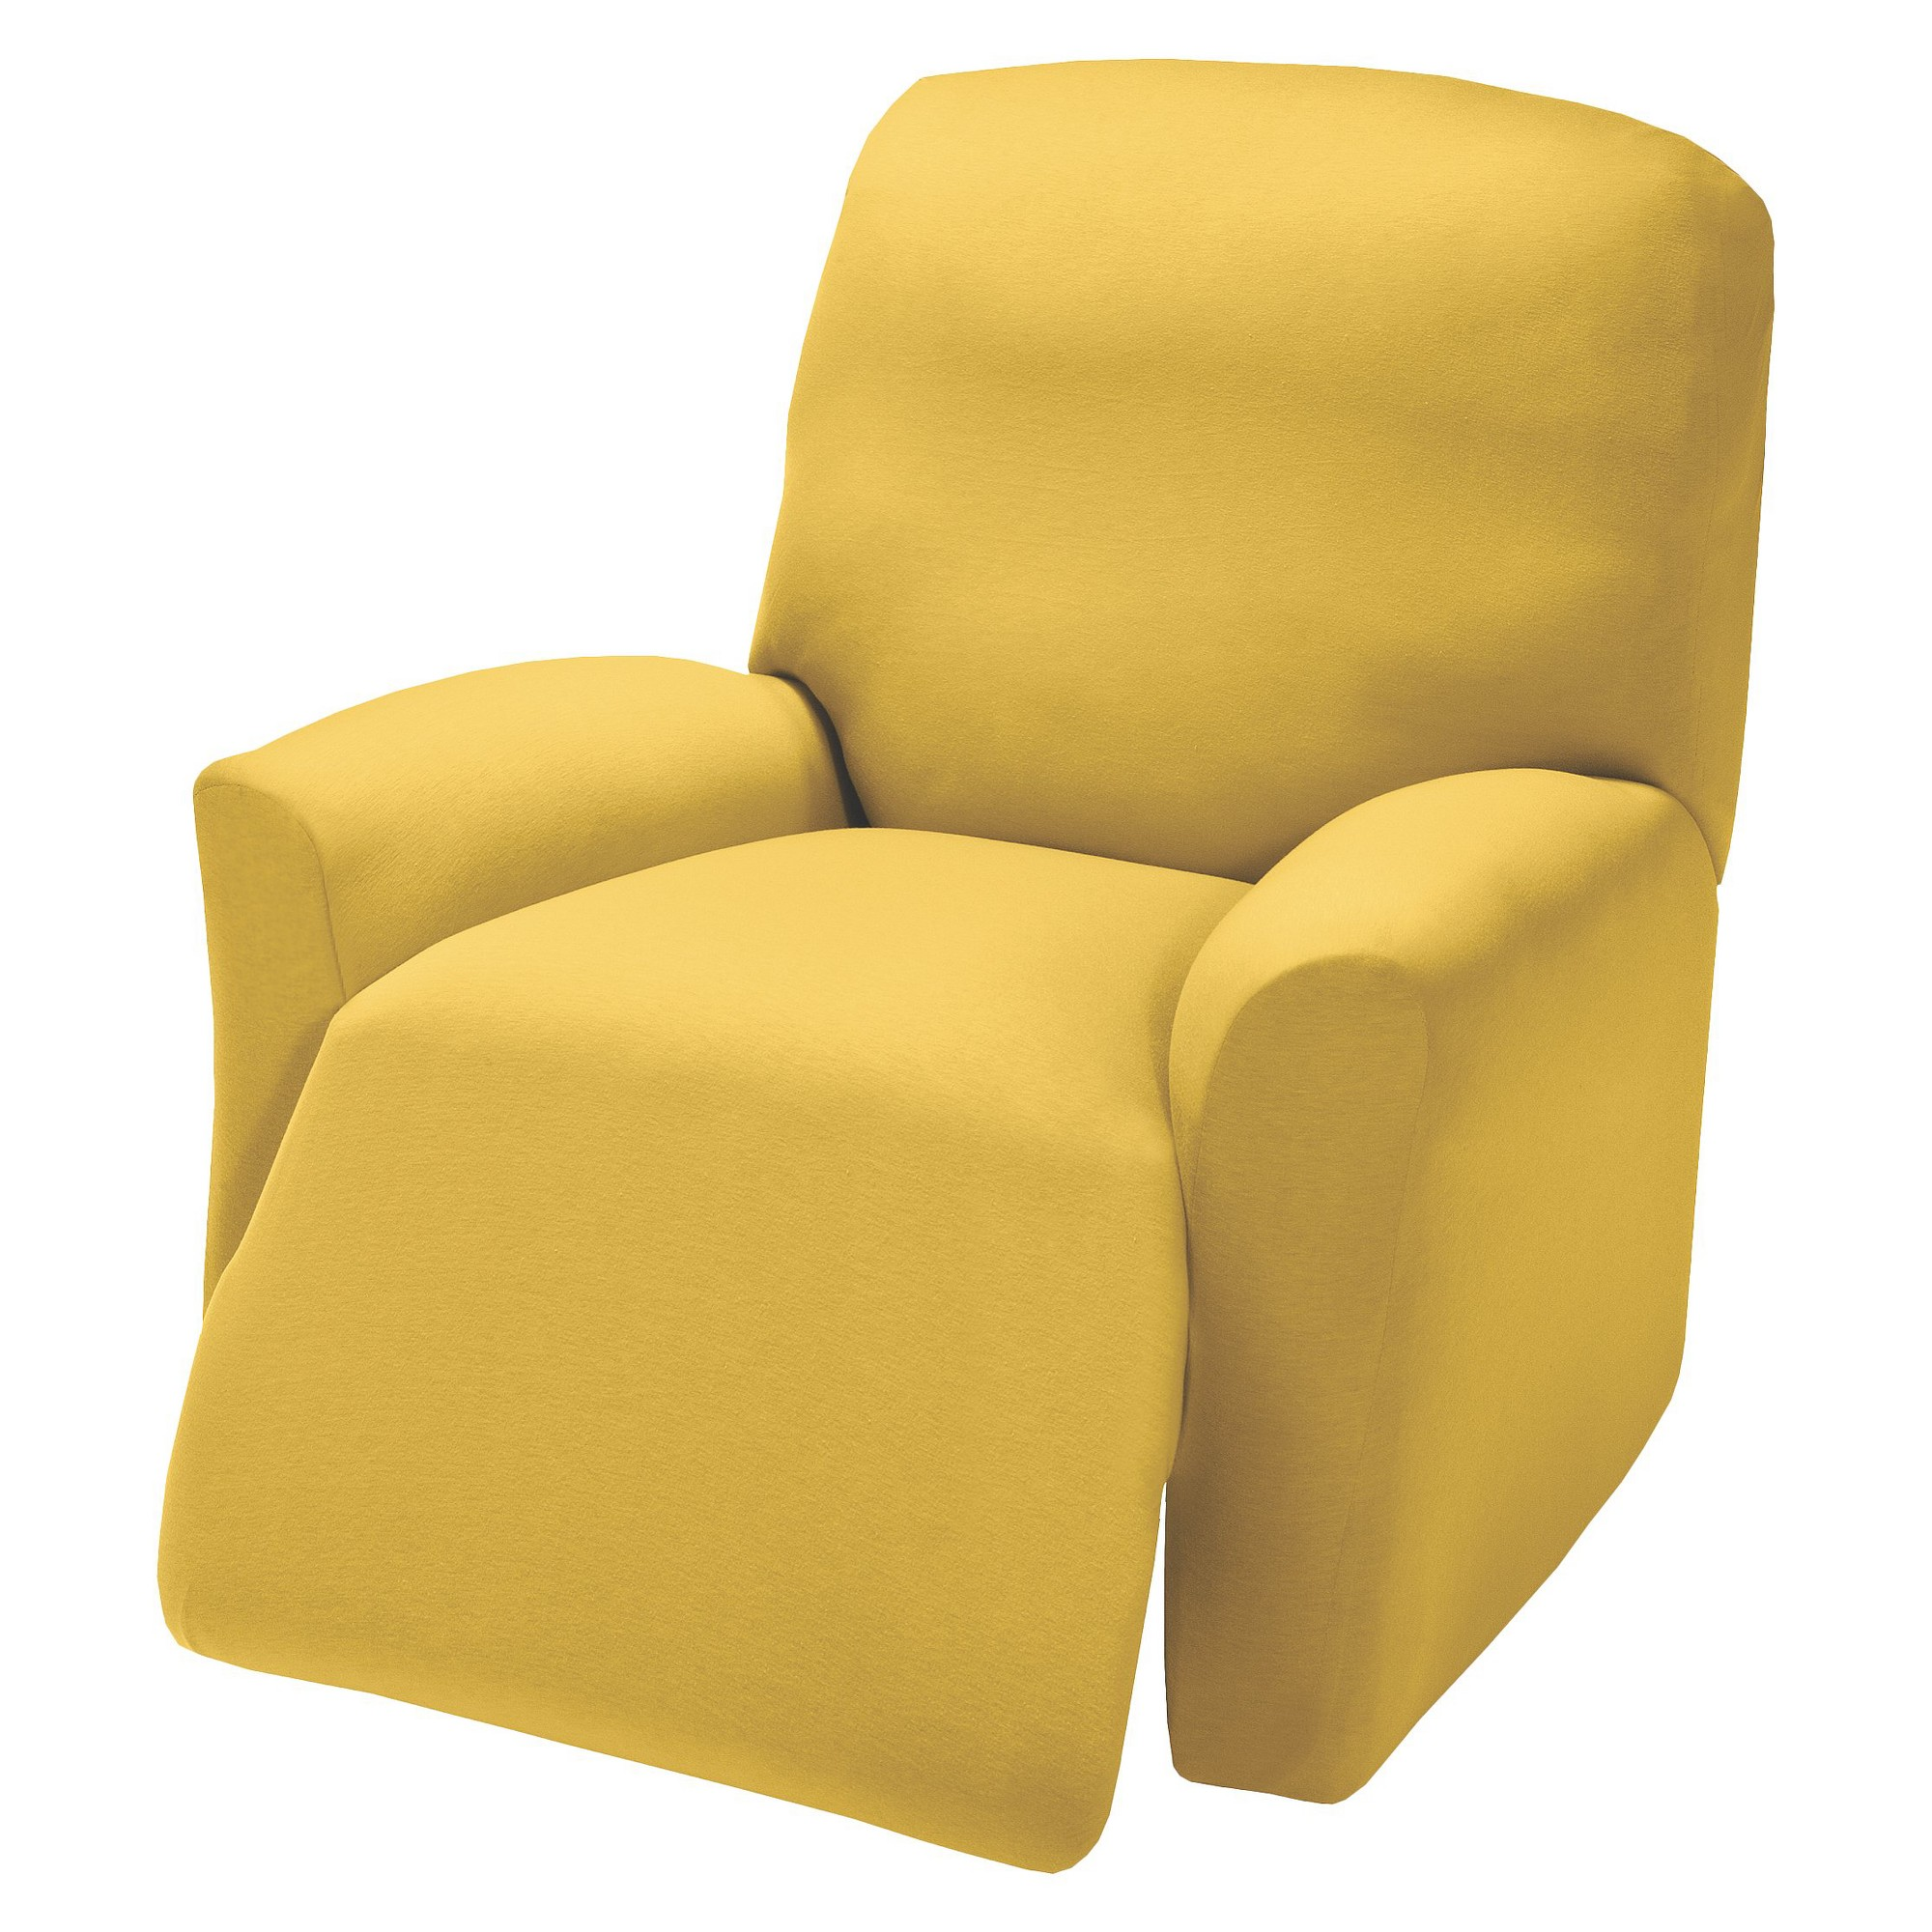 Yellow Jersey Large Recliner Slipcover - Madison Industries